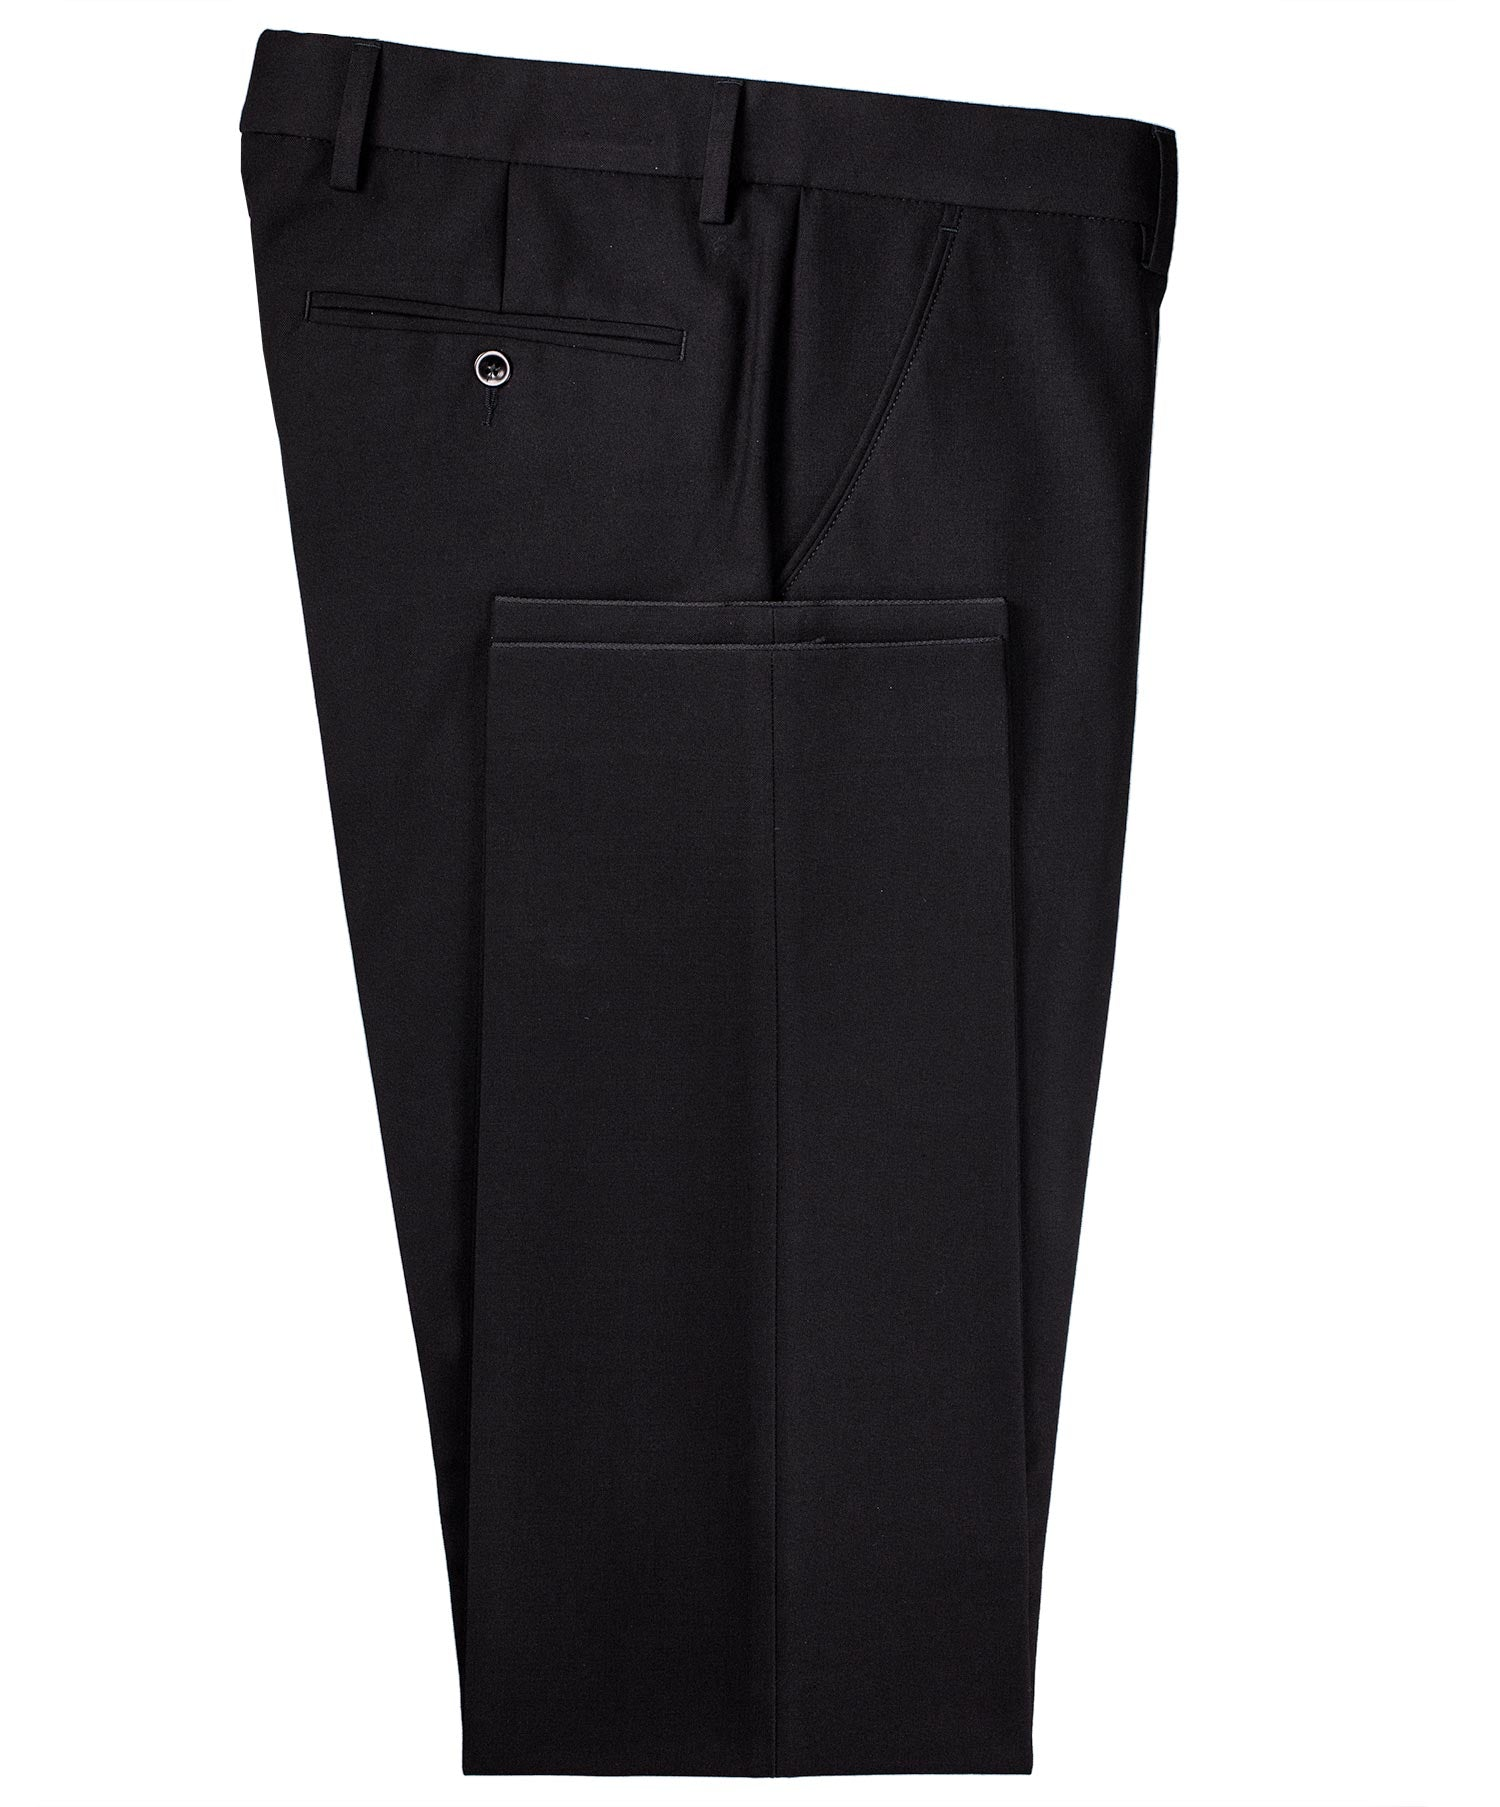 George Black Dress Pant